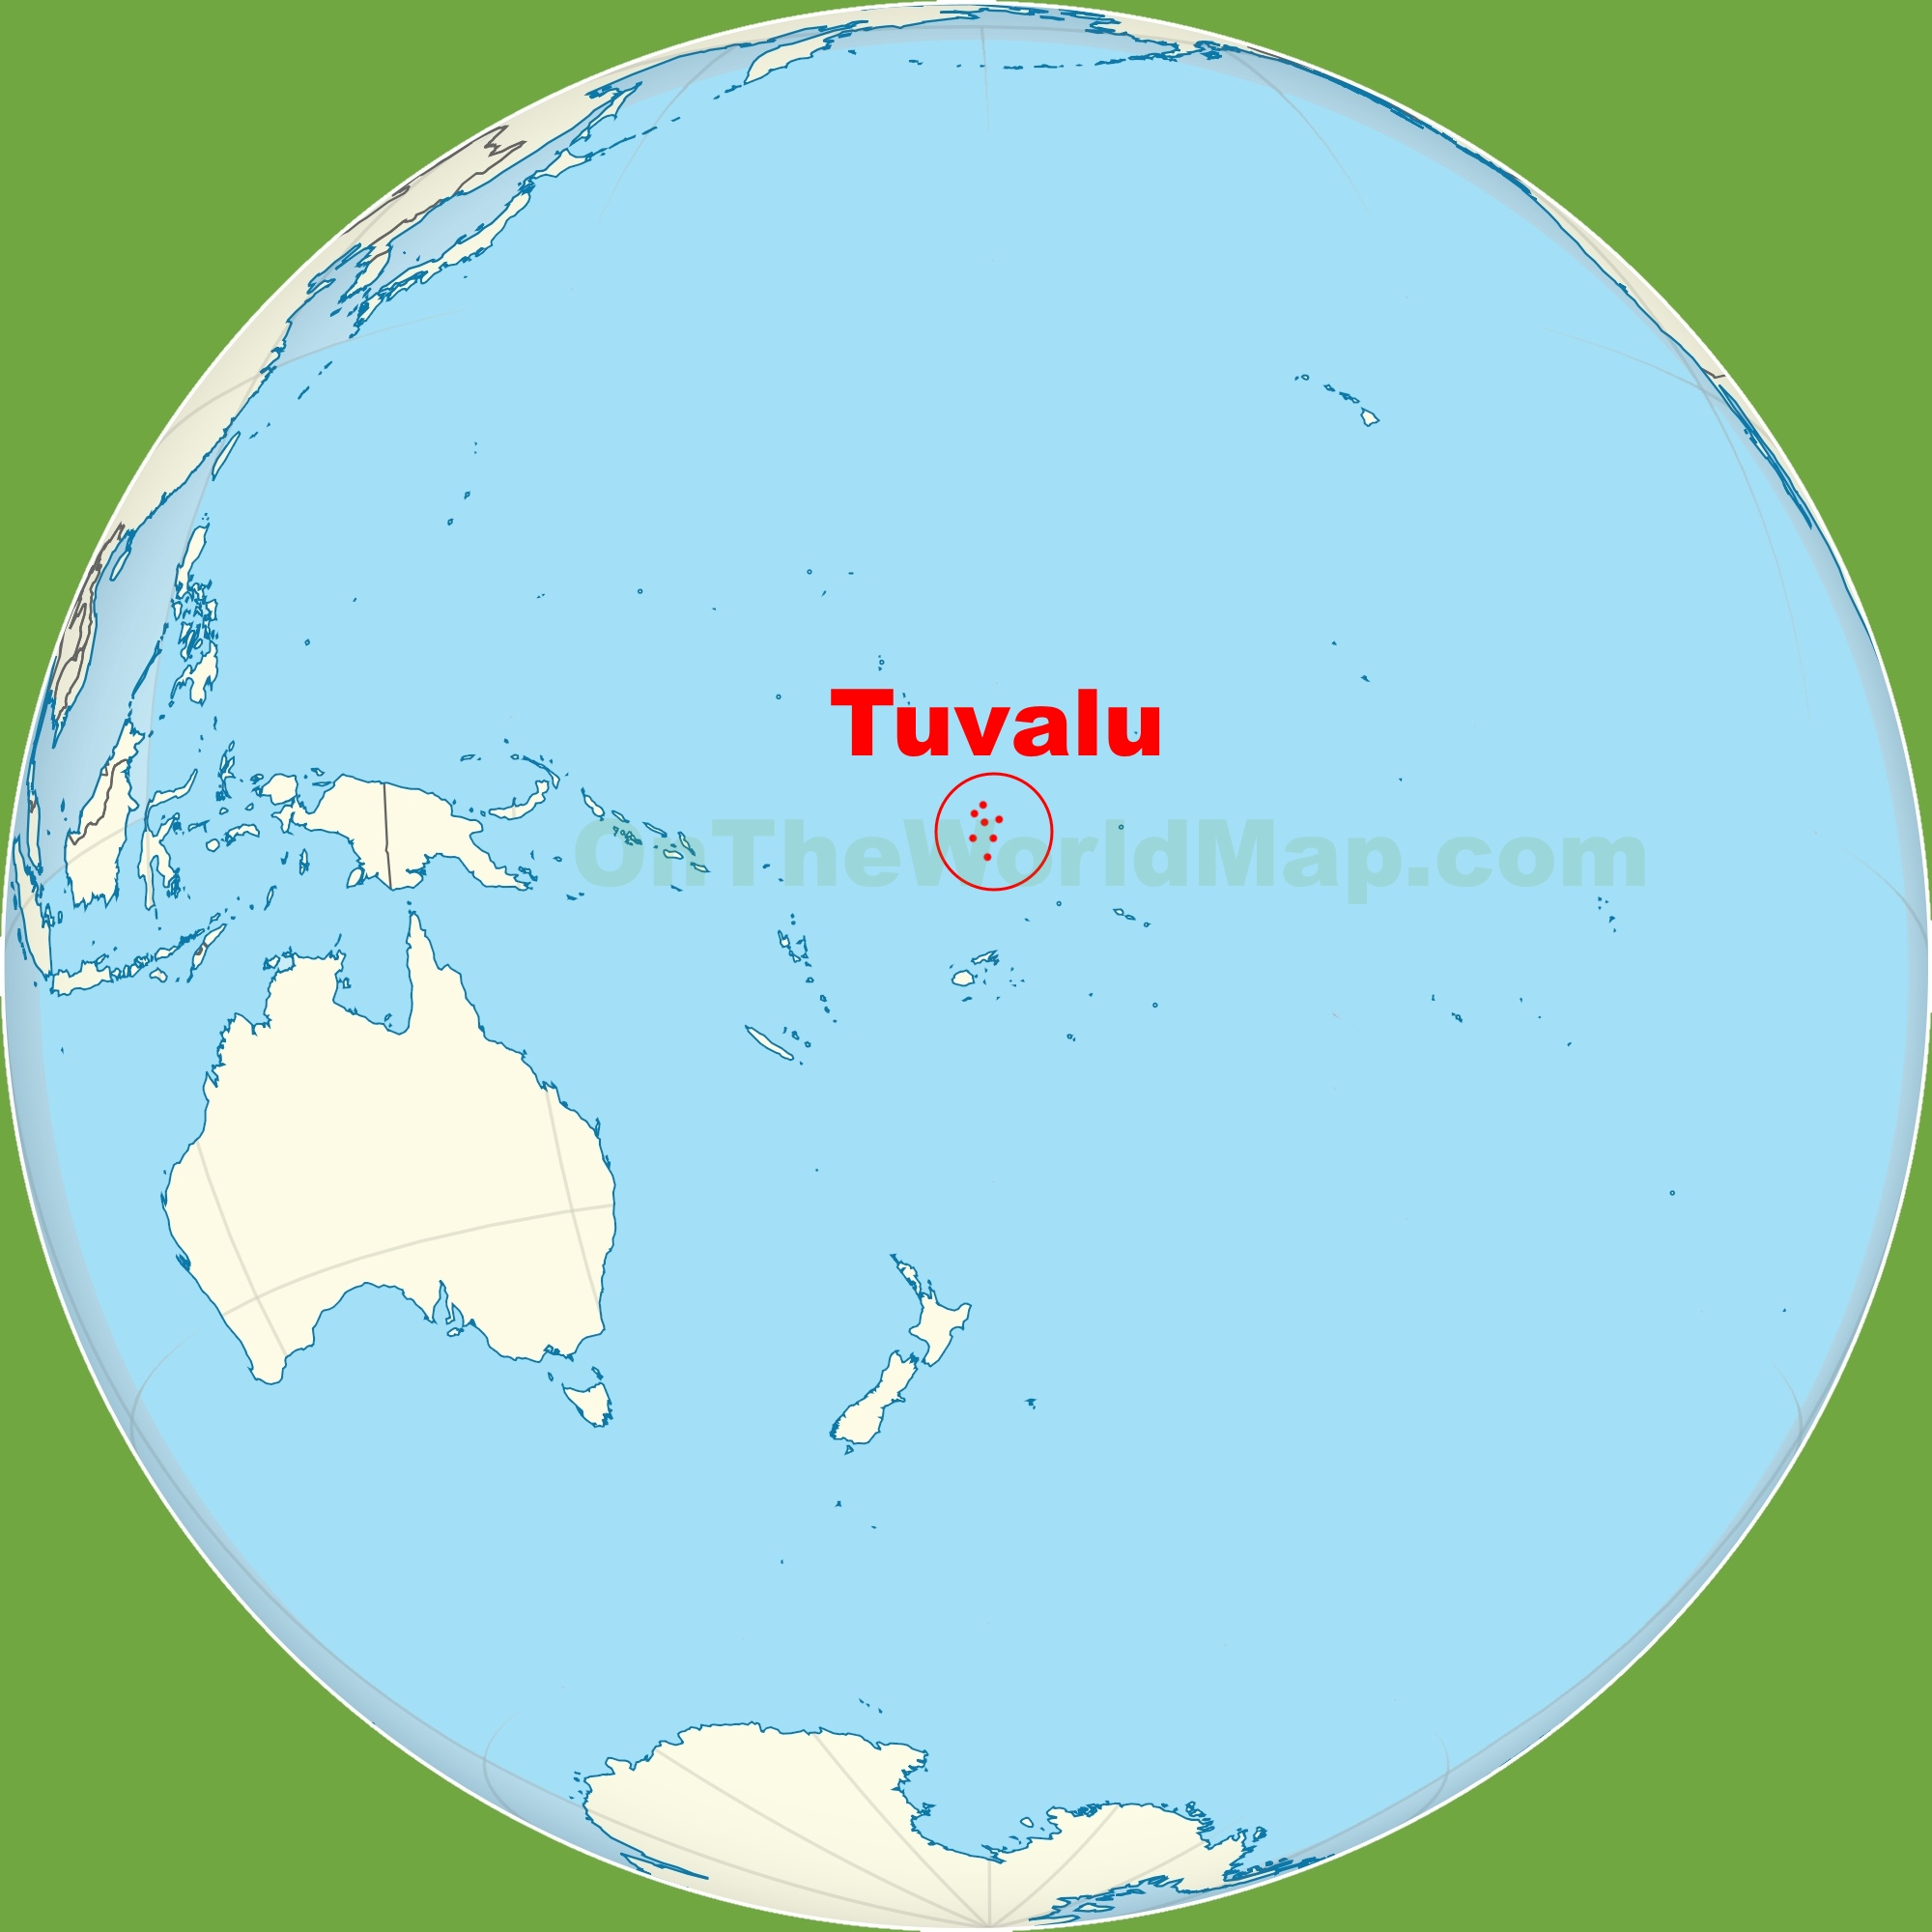 Tuvalu location on the Pacific ocean map